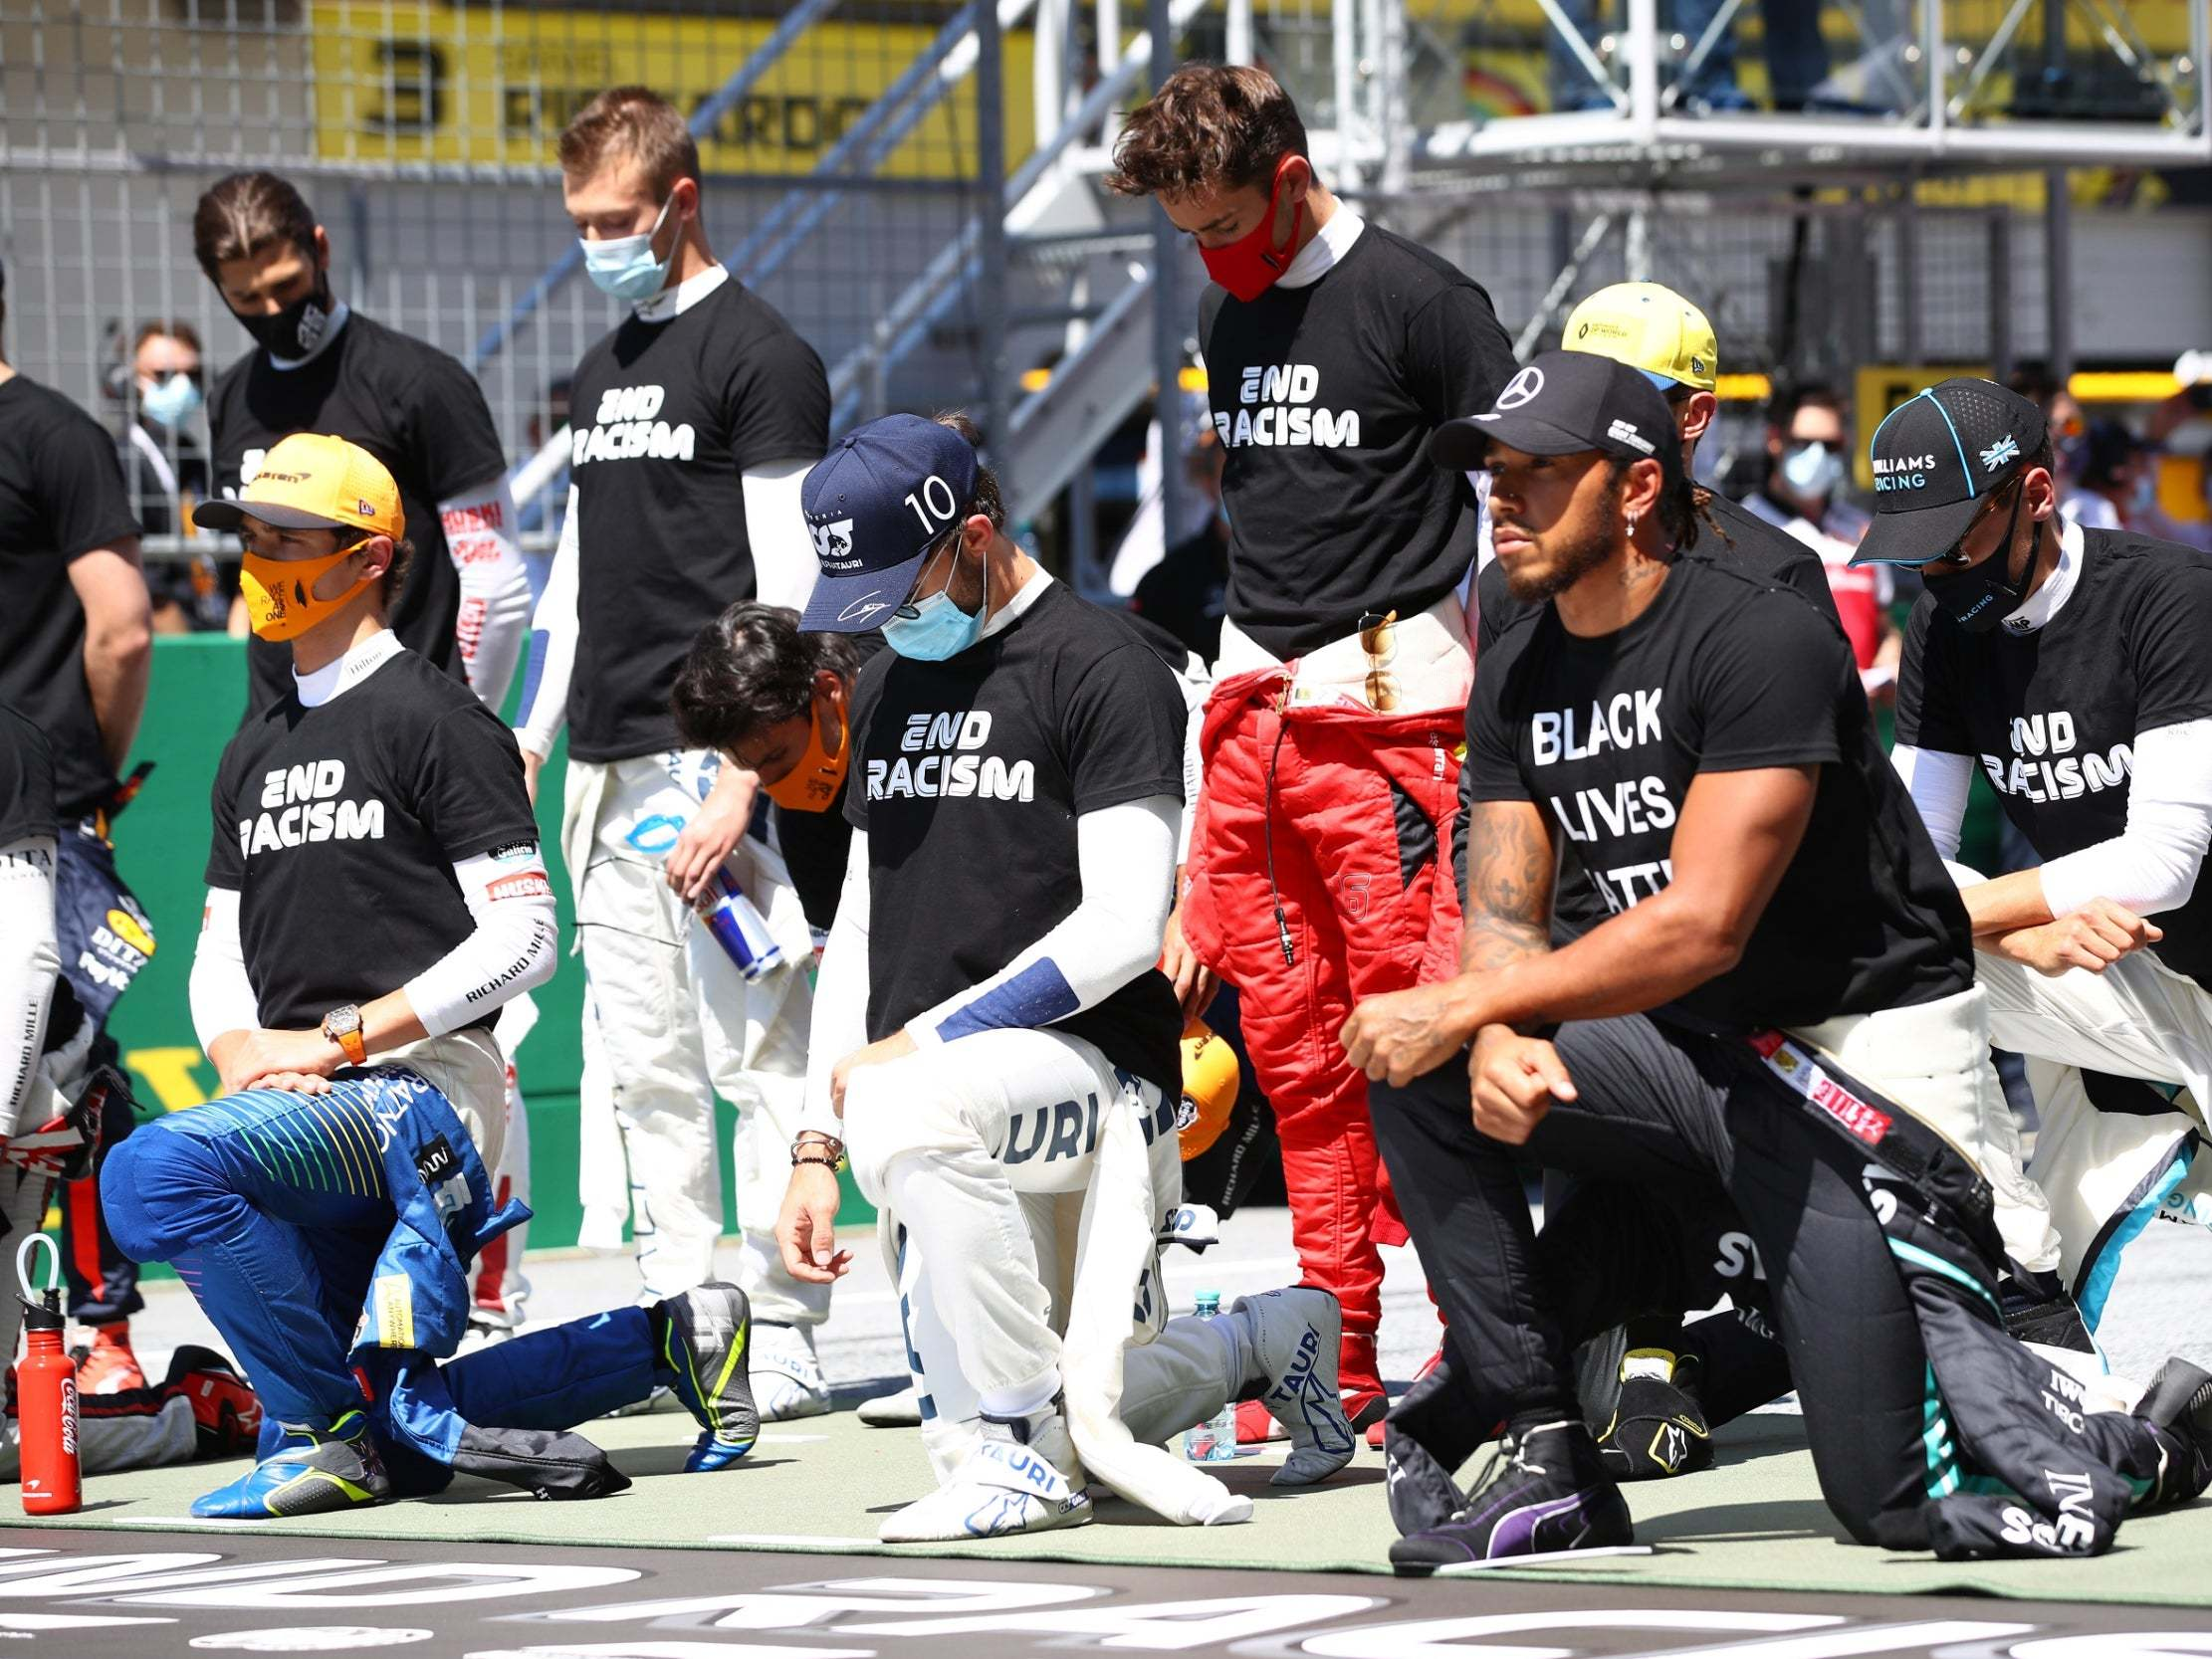 Lewis Hamilton takes a knee before Austrian Grand Prix but six F1 drivers decide to stand